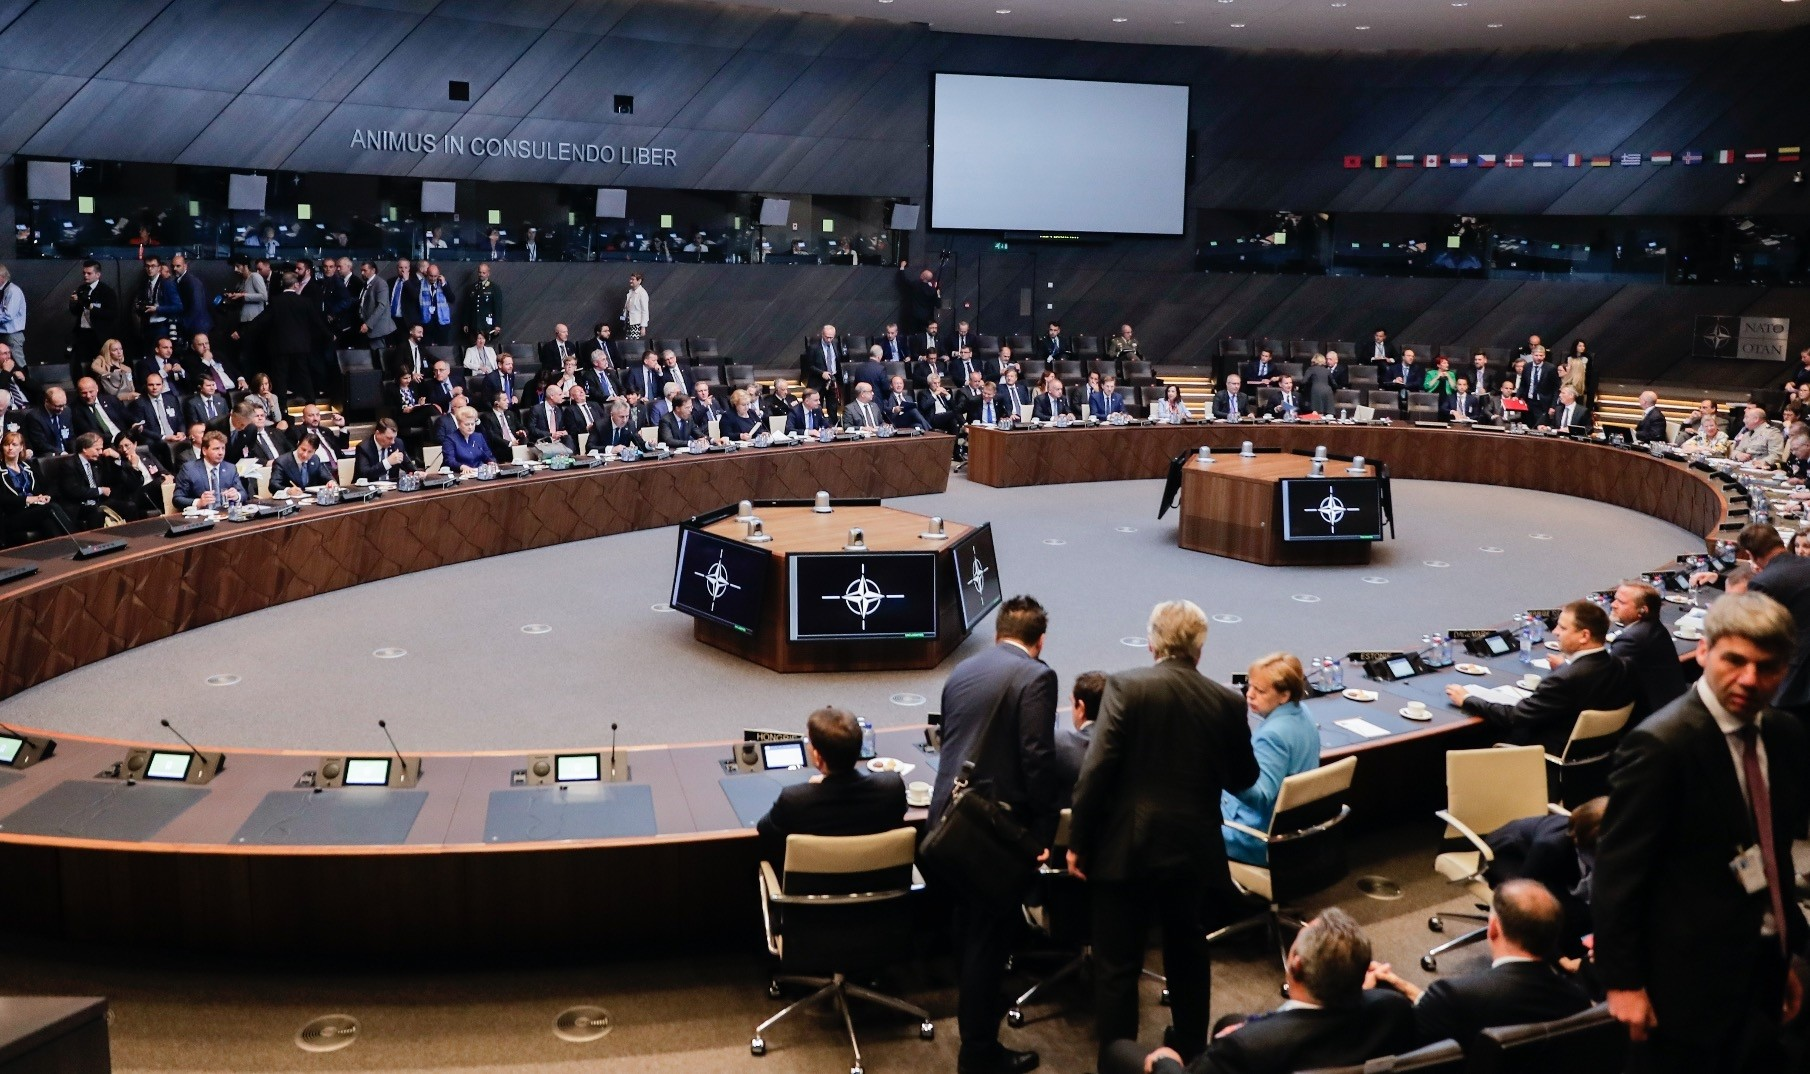 Heads of NATO member states and their delegations hold a working session during a summit at the NATO headquarters, Brussels, July 11.